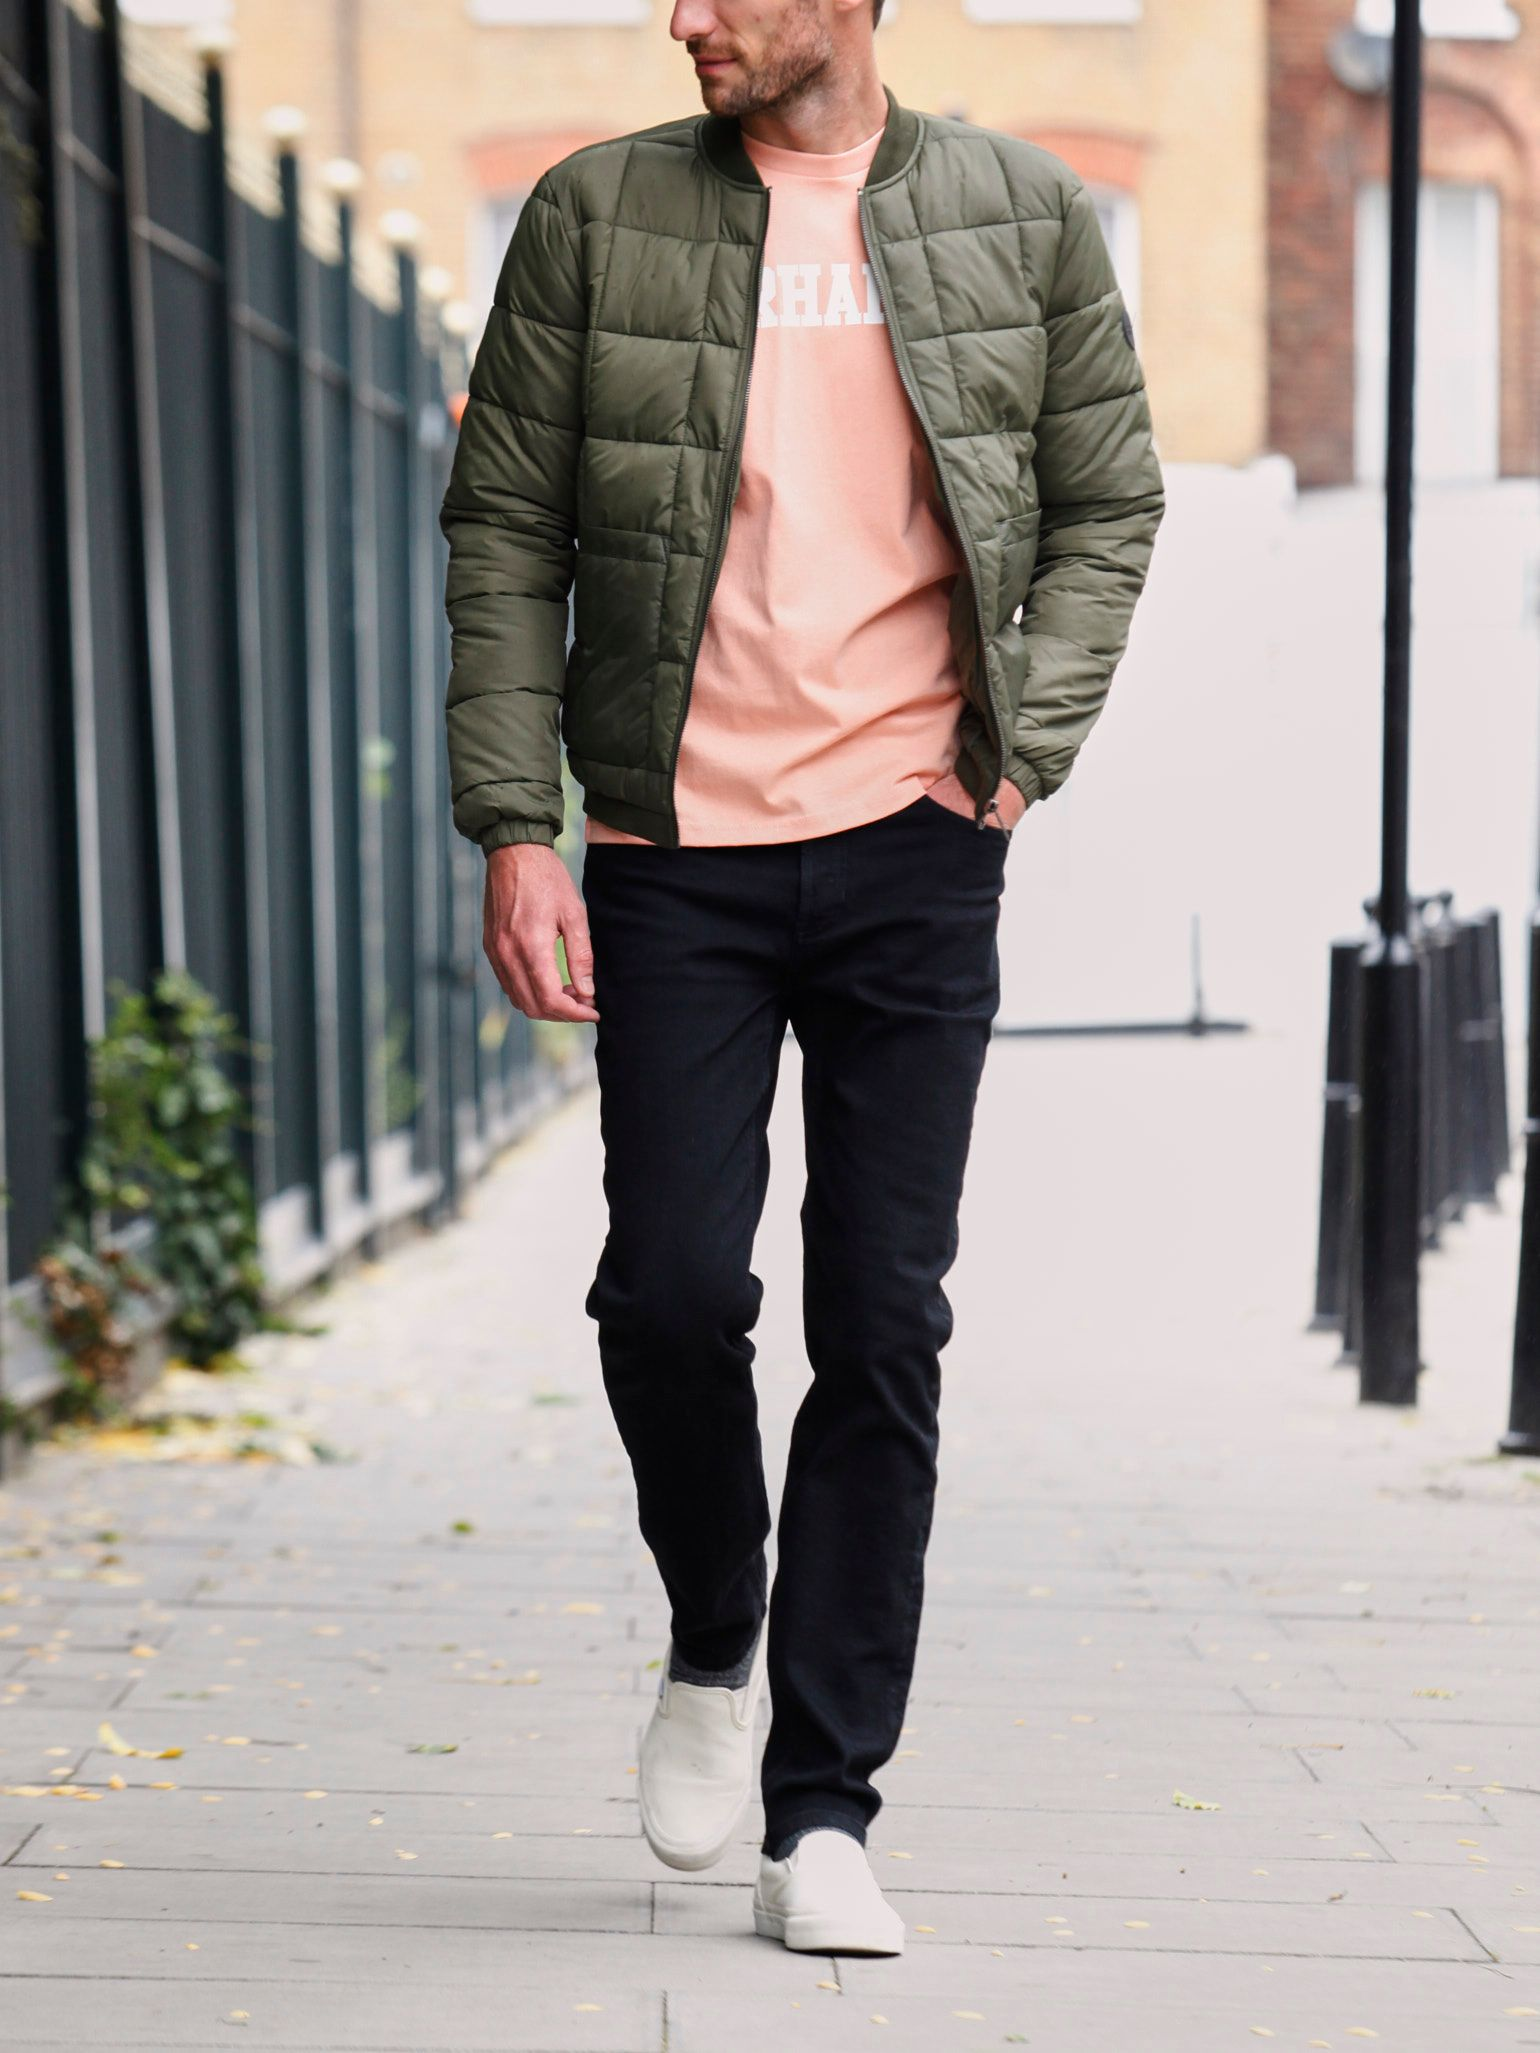 Men's outfit idea for 2021 with bomber jacket, logo printed crew neck t-shirt, black jeans, plimsolls. Suitable for spring and fall.